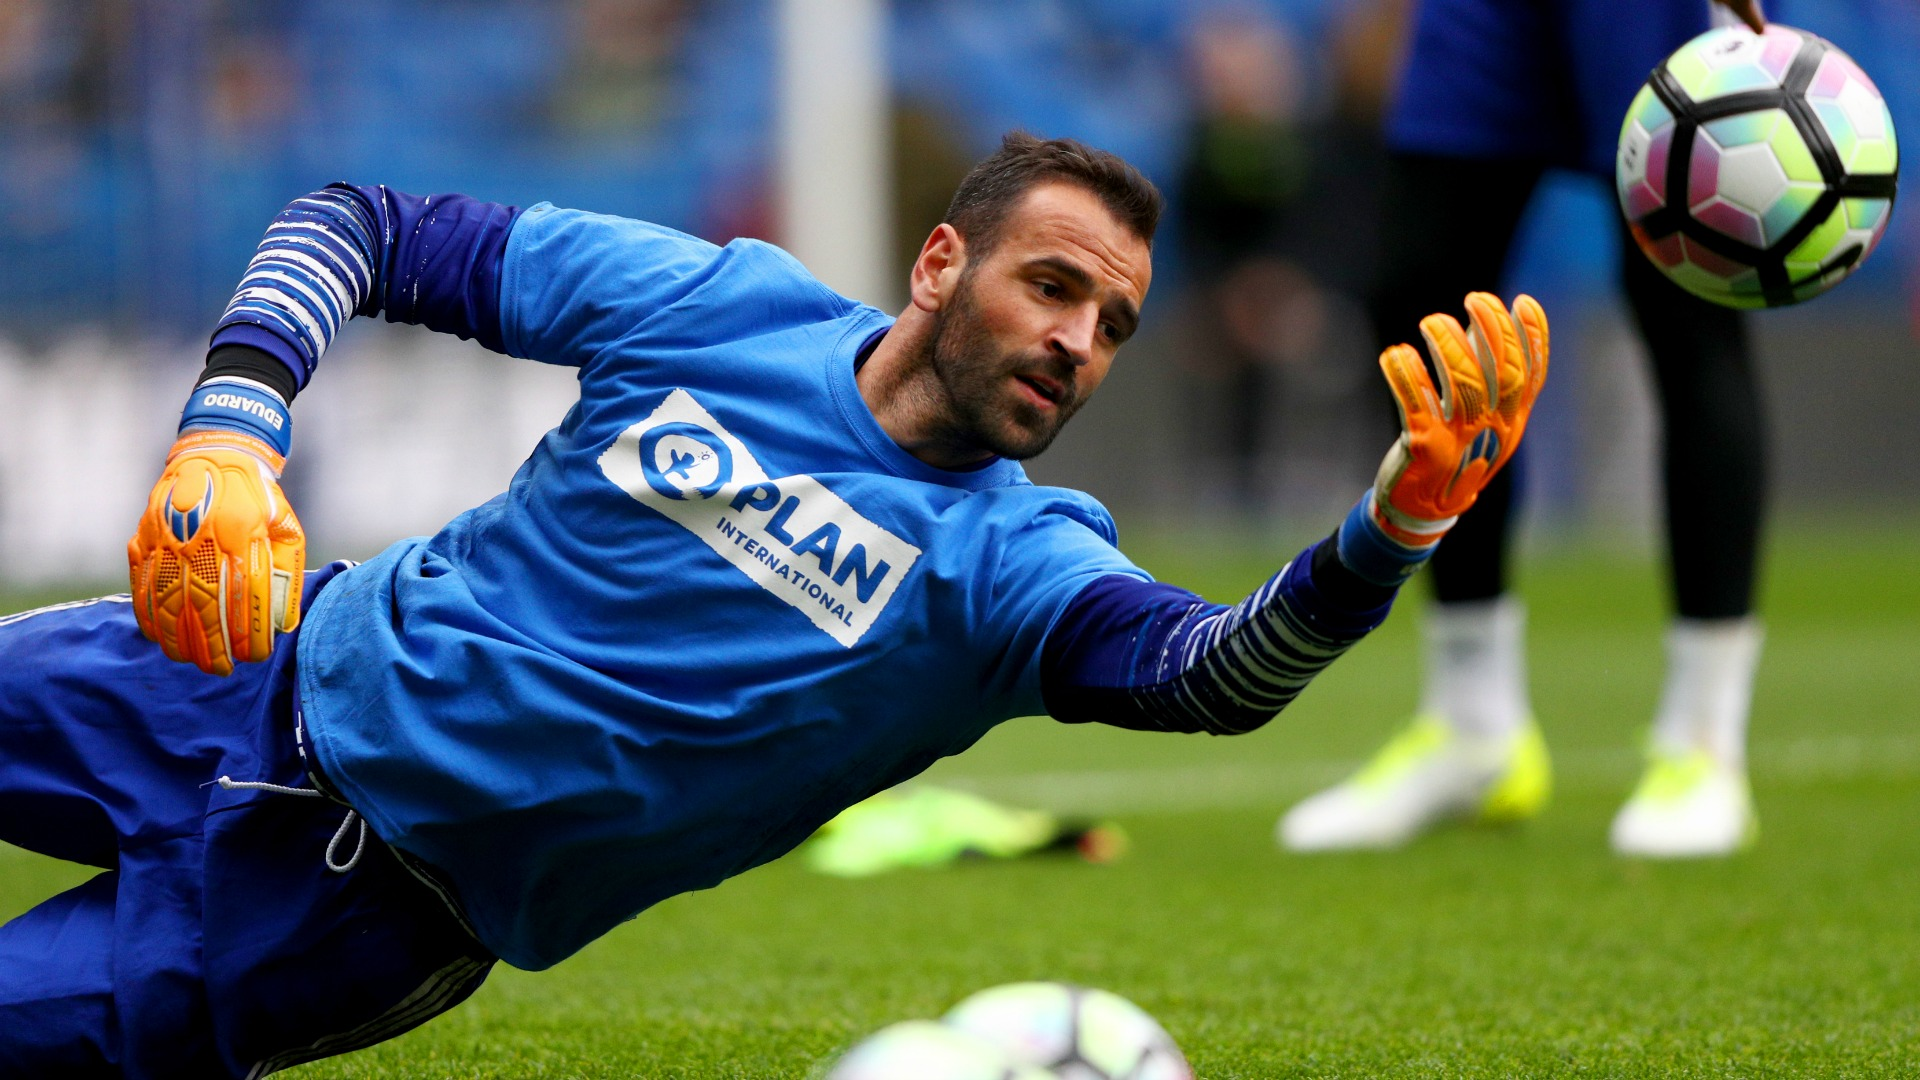 Chelsea's third-choice keeper Eduardo signs new deal